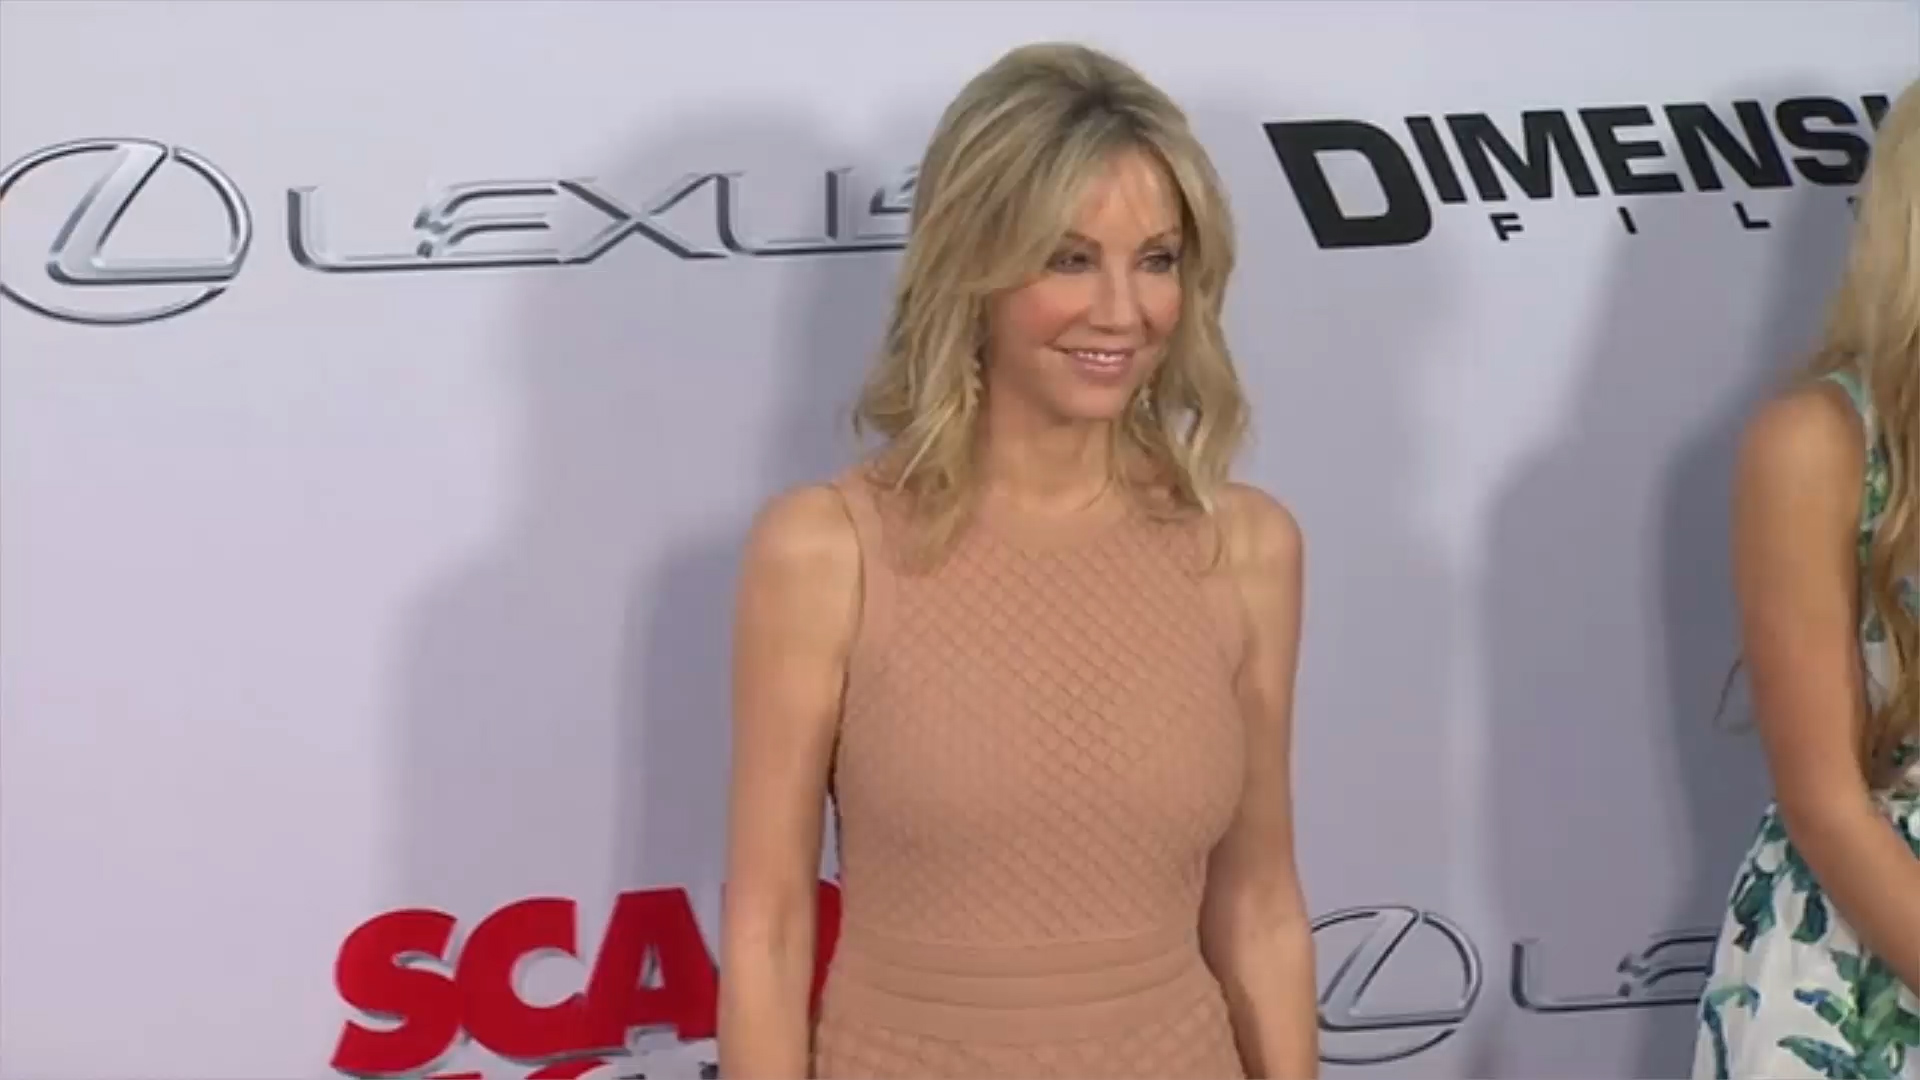 Heather Locklear shares 'still sober' photo after being ordered to enroll in residential treatment program